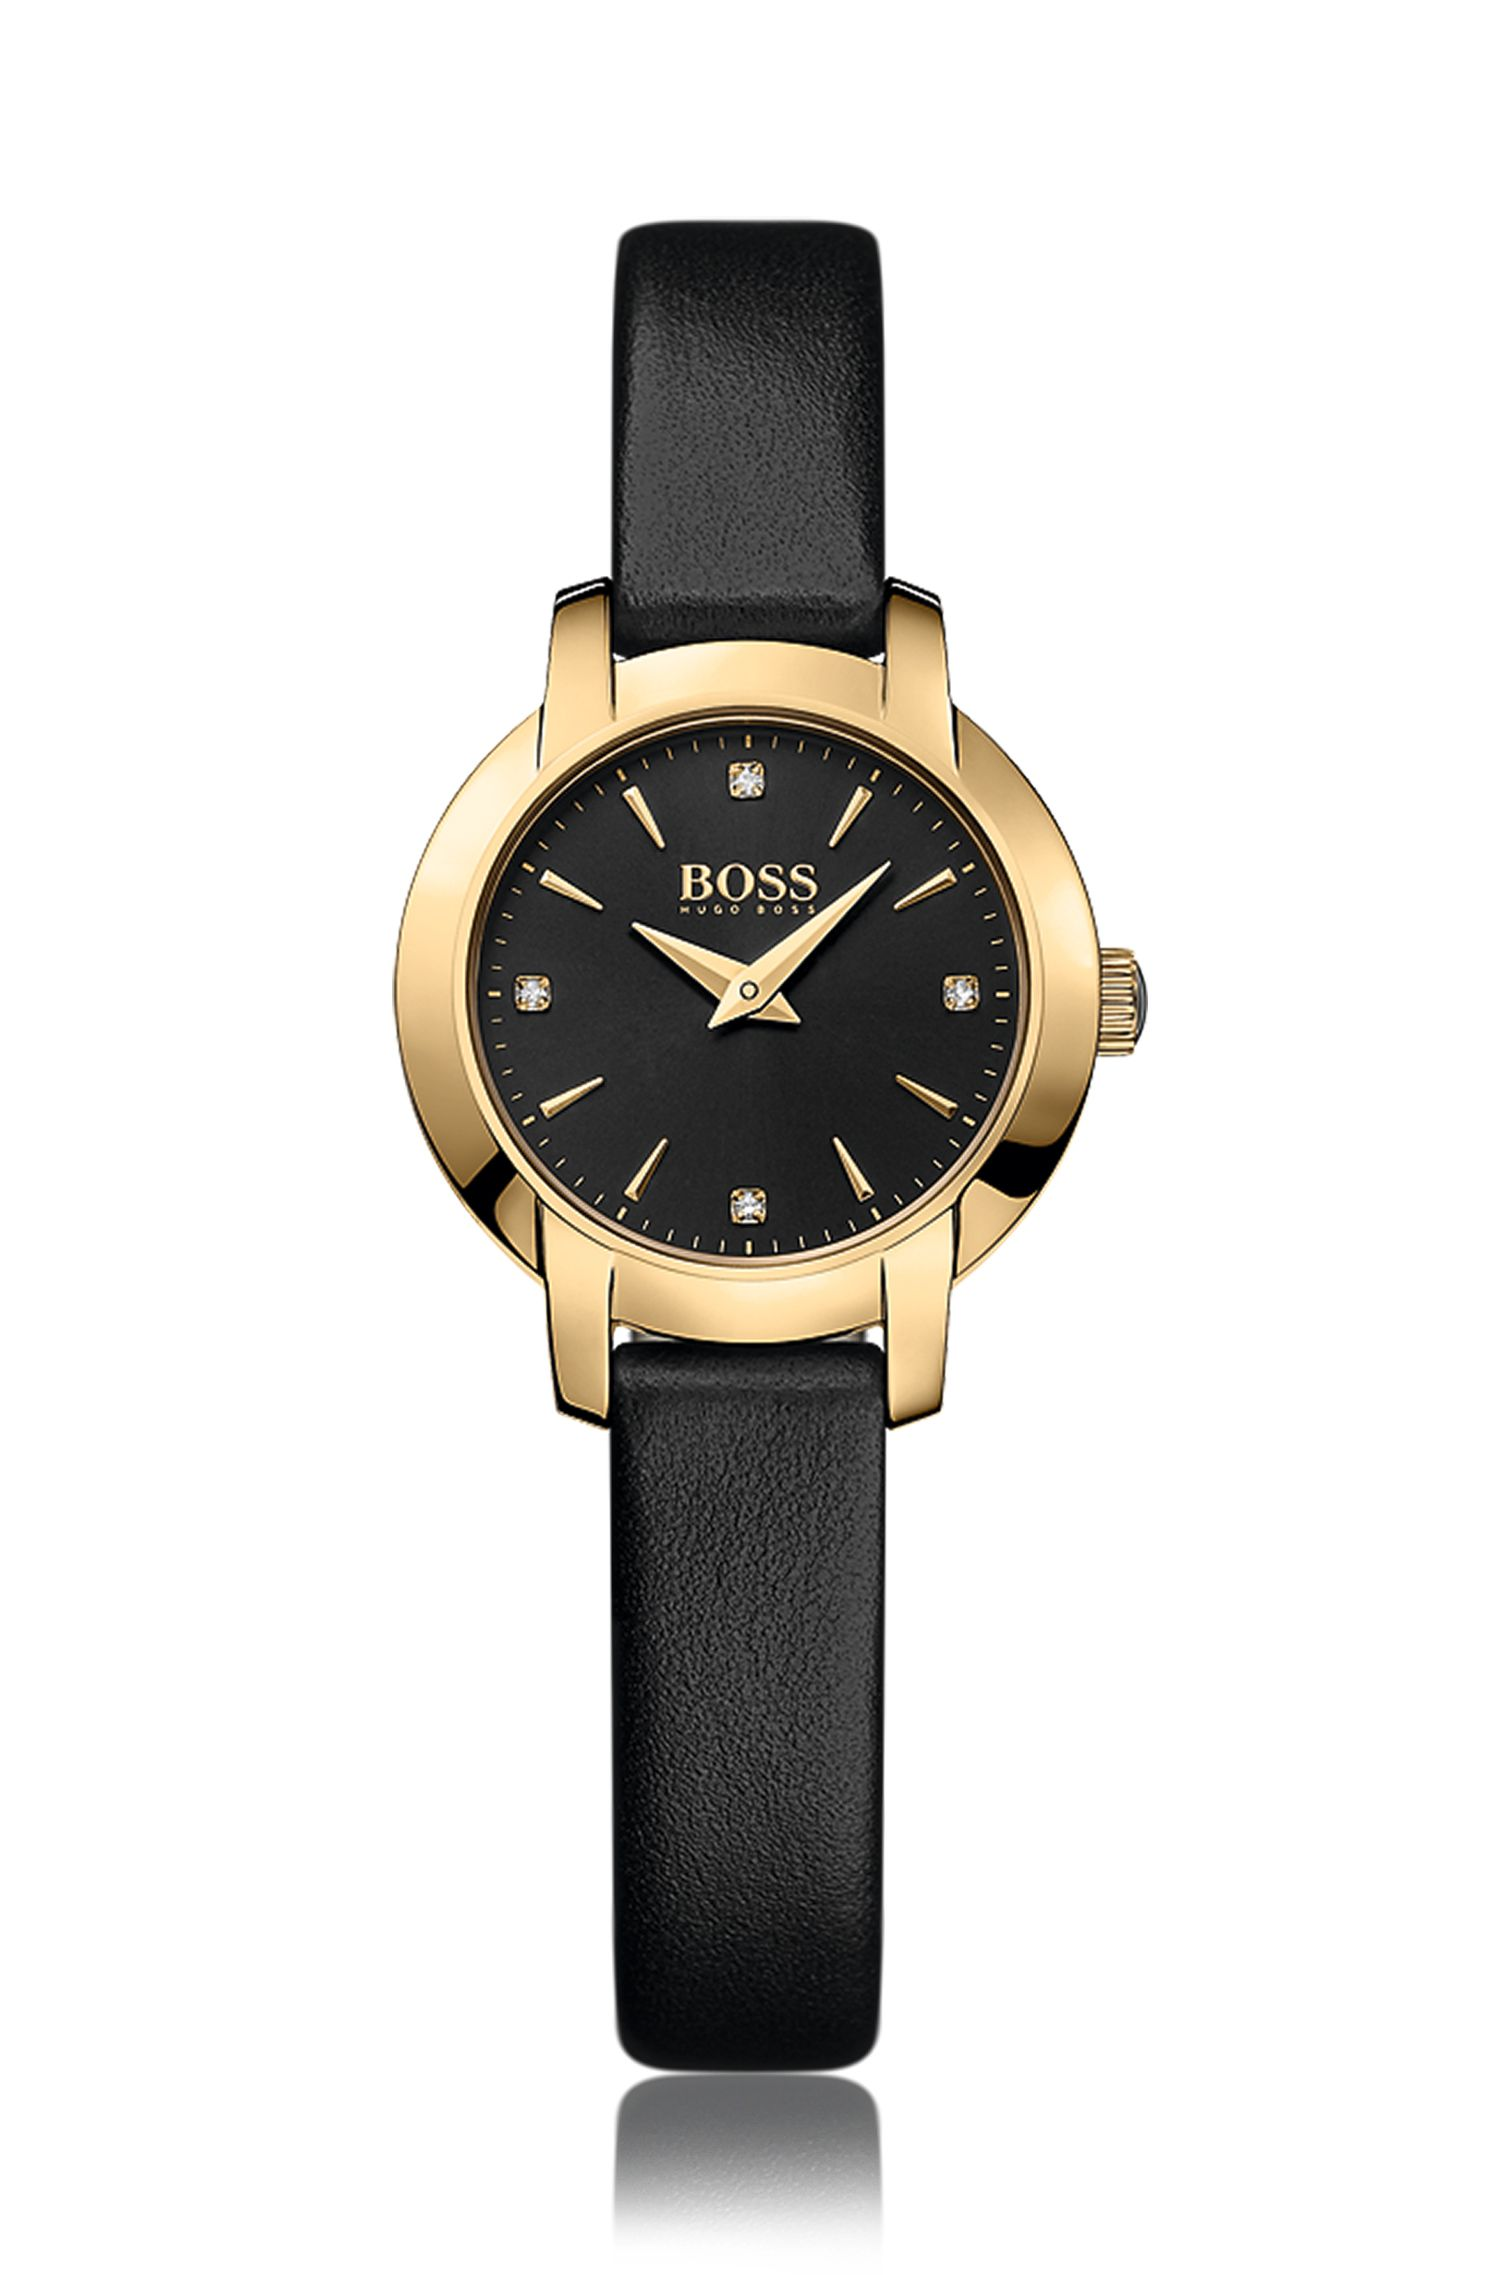 Gold-plated two-hand watch with a black sunray dial and leather strap